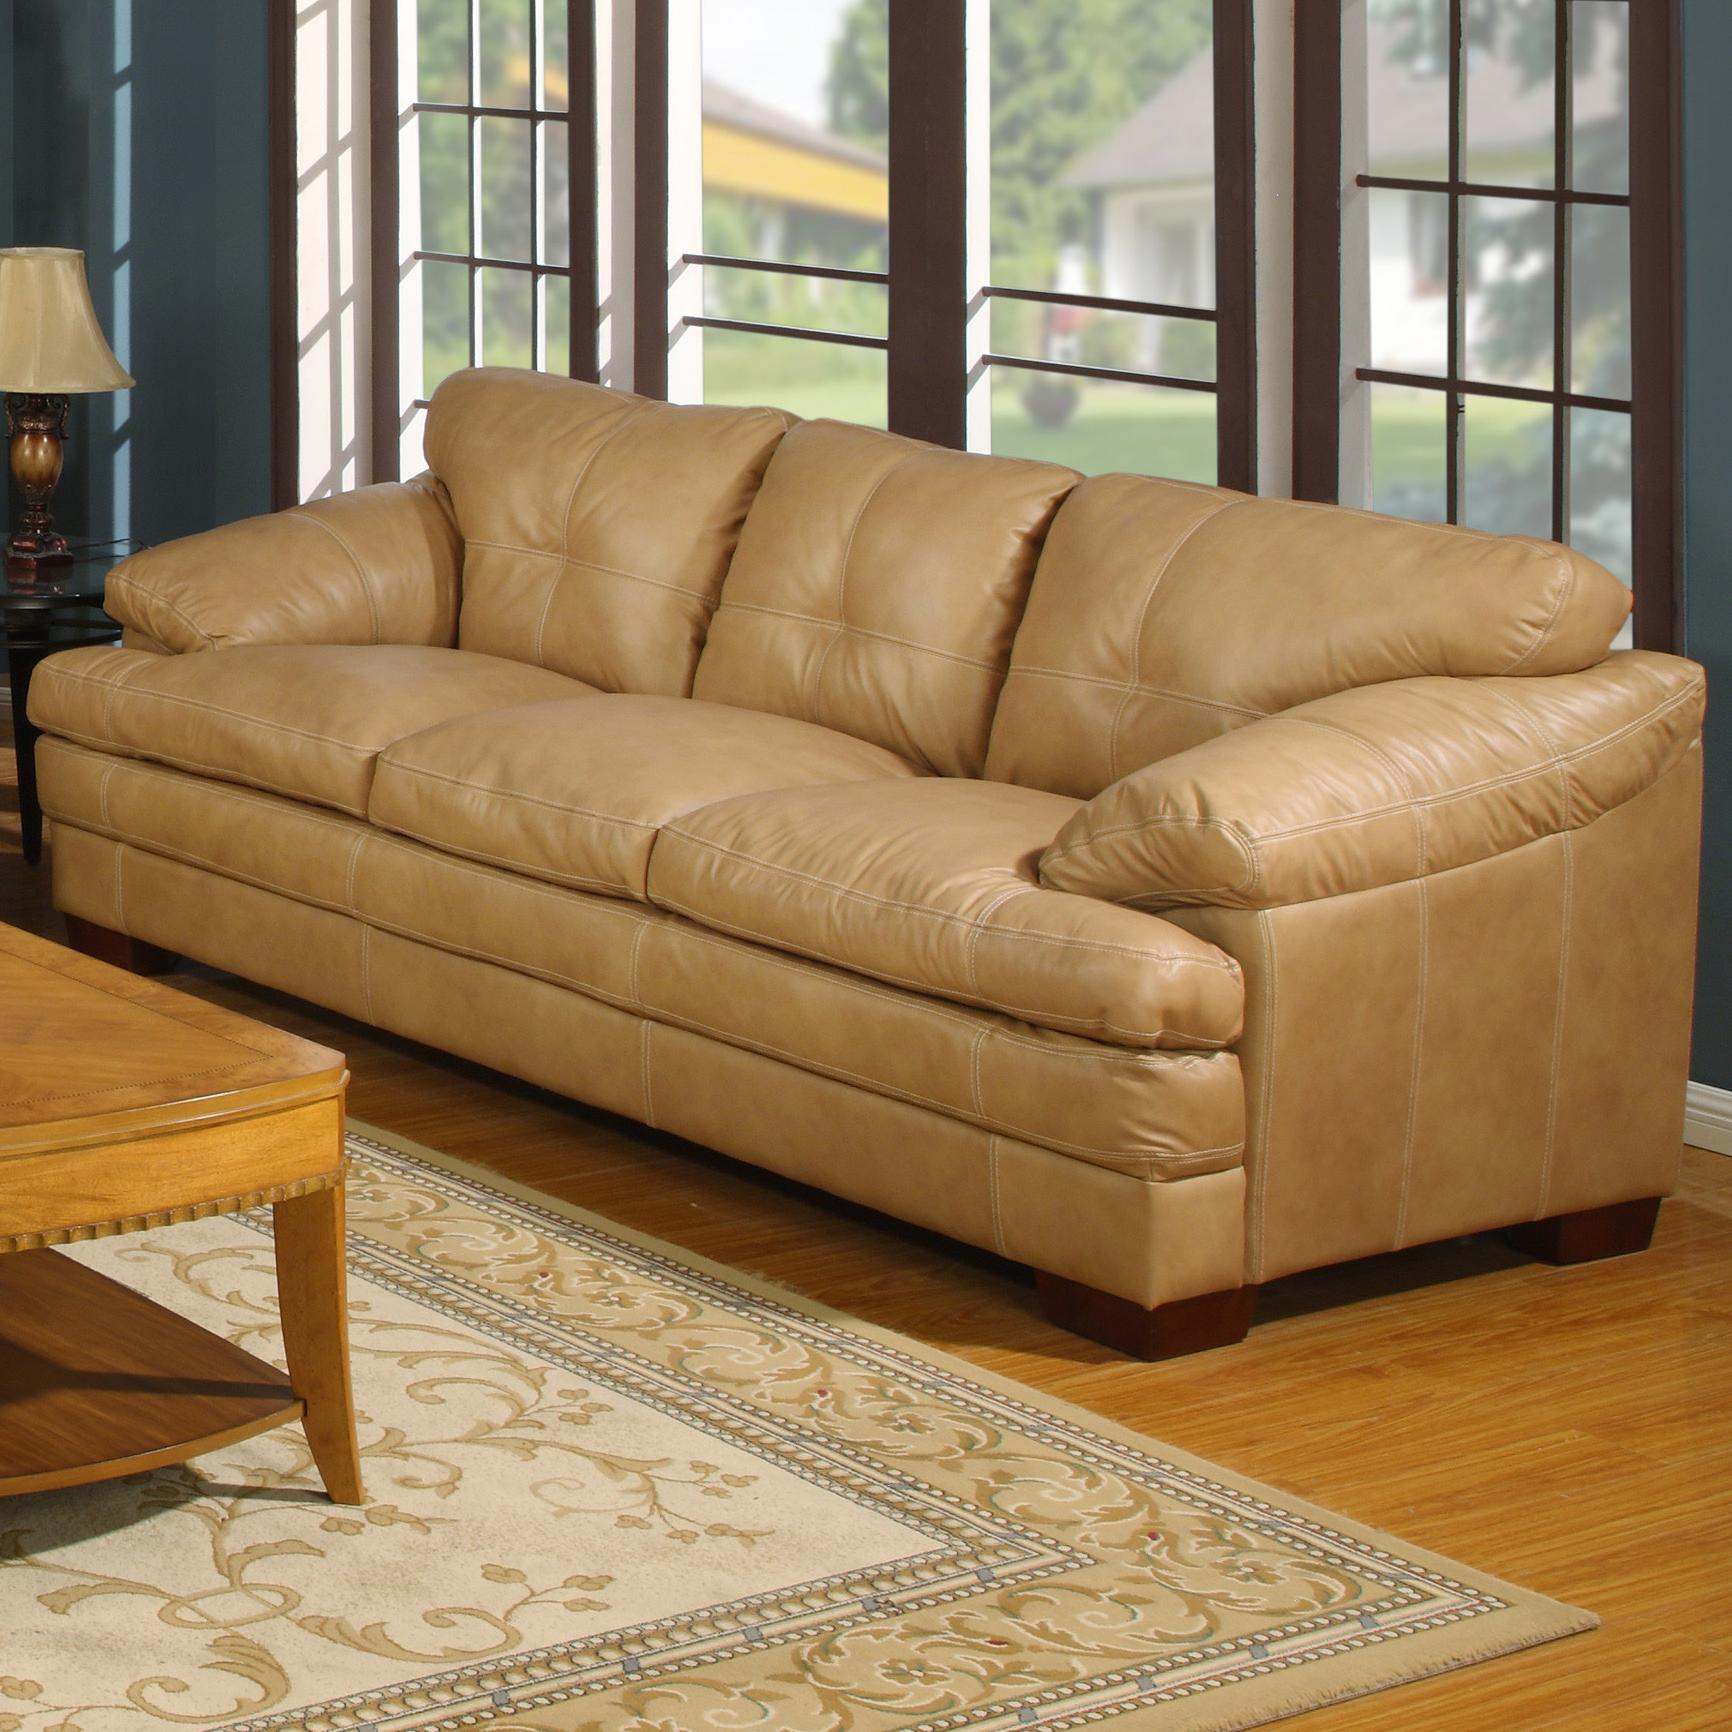 bad credit financing living room furniture safari inspired primo international mayfair mayfas casual 3 seat leather ...